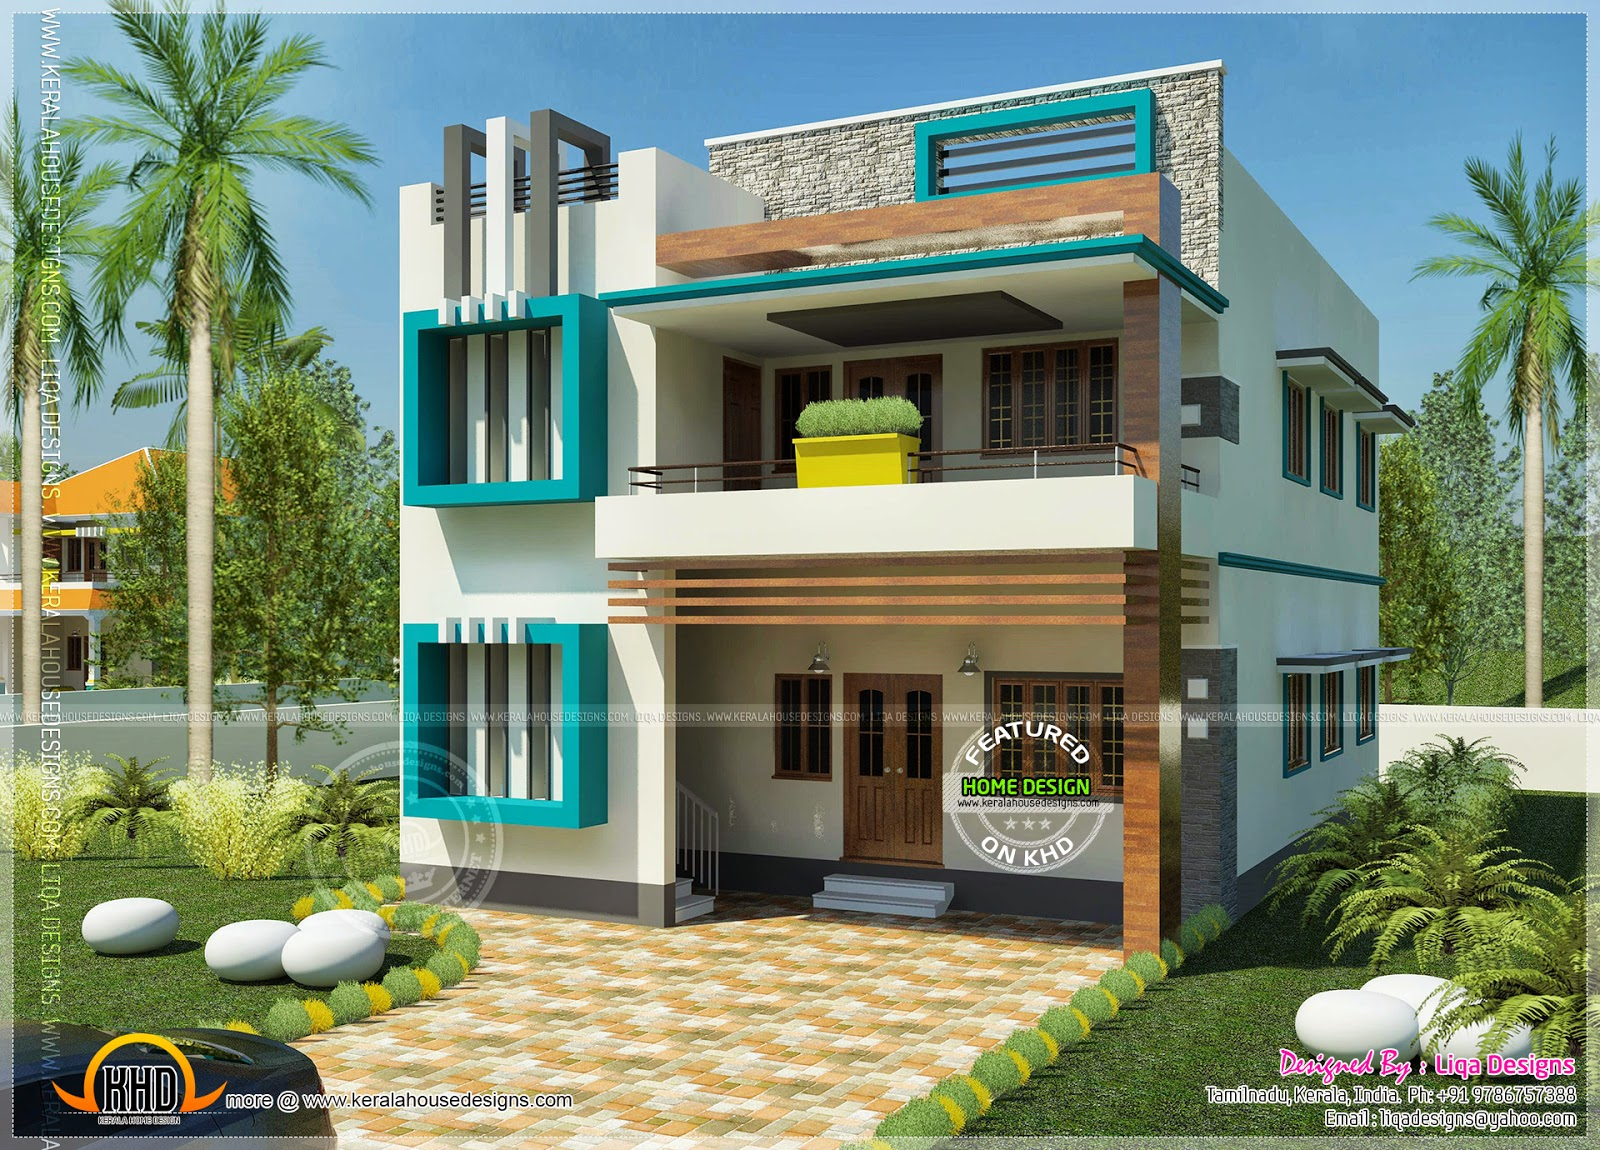 South indian contemporary home kerala home design and floor plans Indian small house exterior design